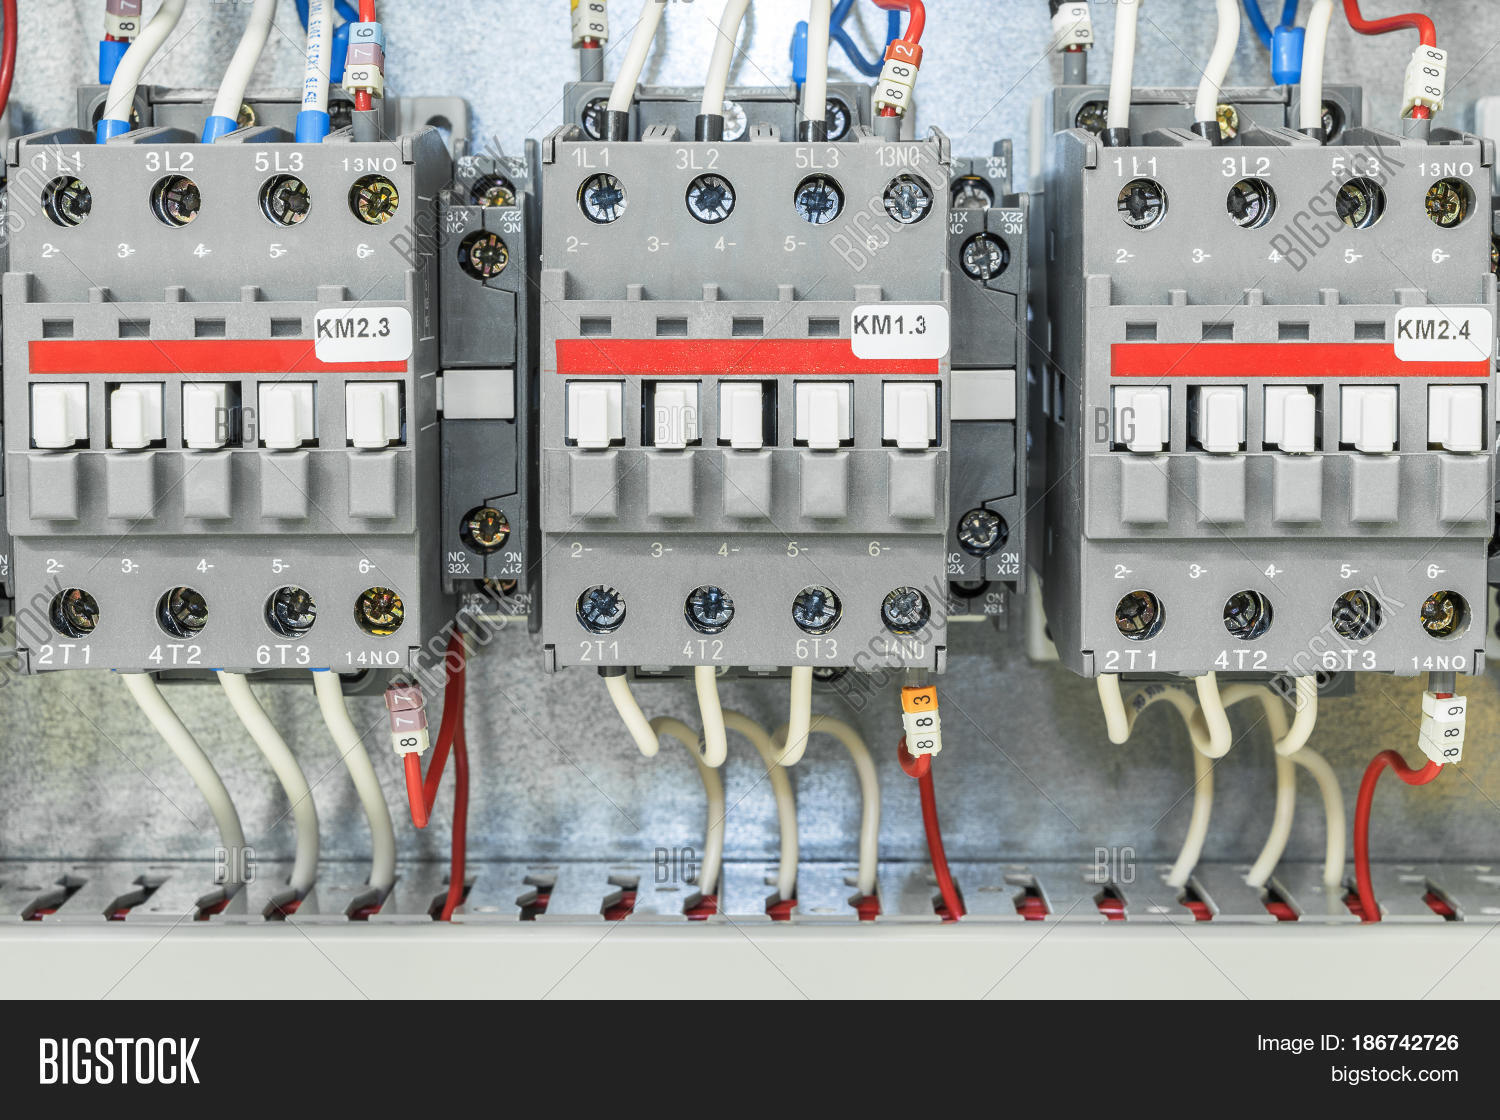 hight resolution of on the artboard mounted three electric contactor with auxiliary contacts the contactors connected wires with